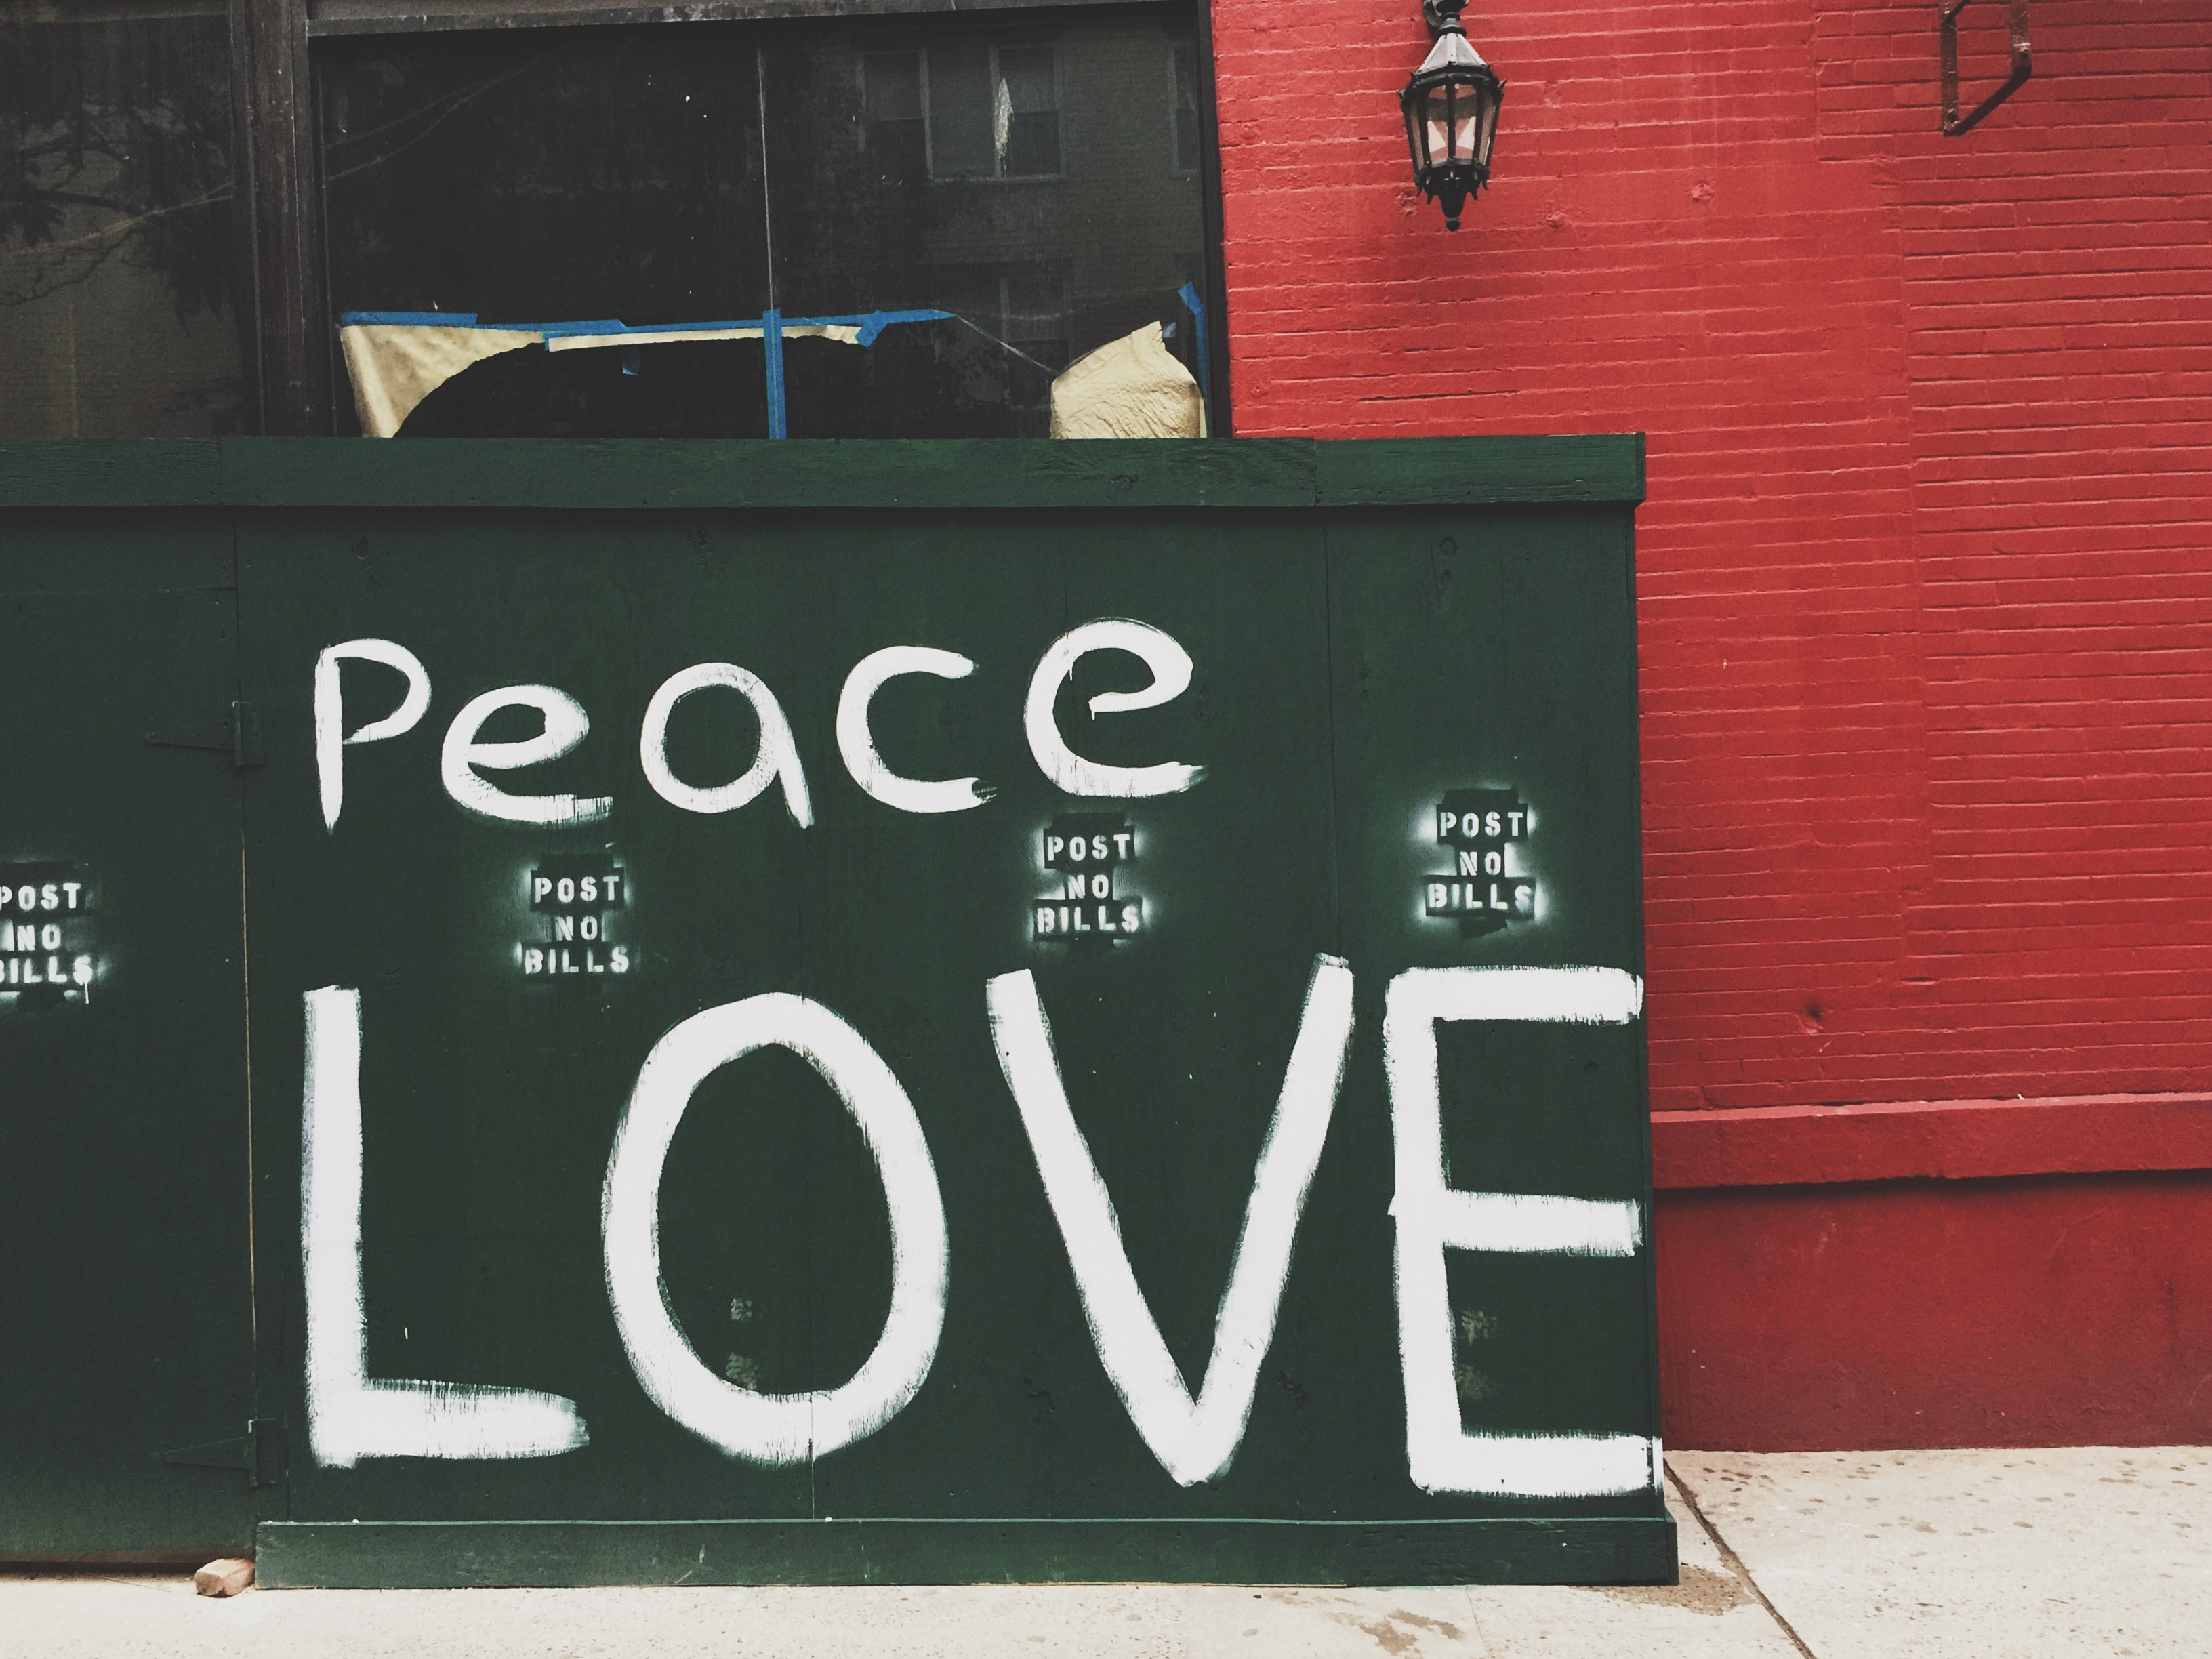 Peace Love painted on green wall